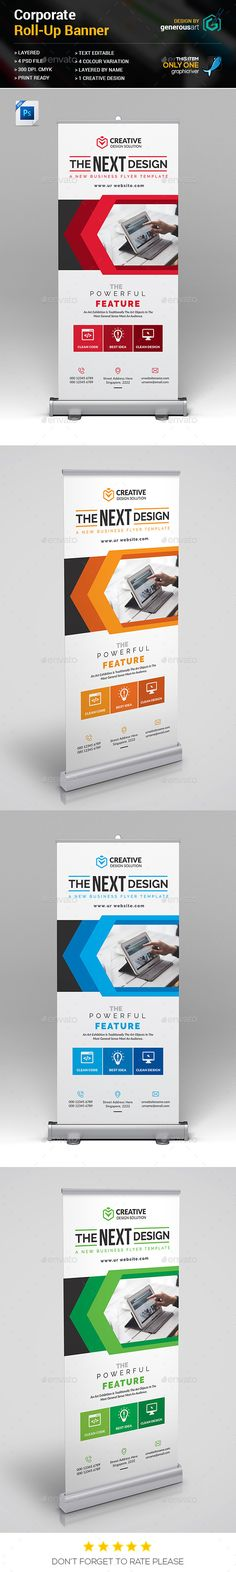 Roll-Up Banner Template PSD